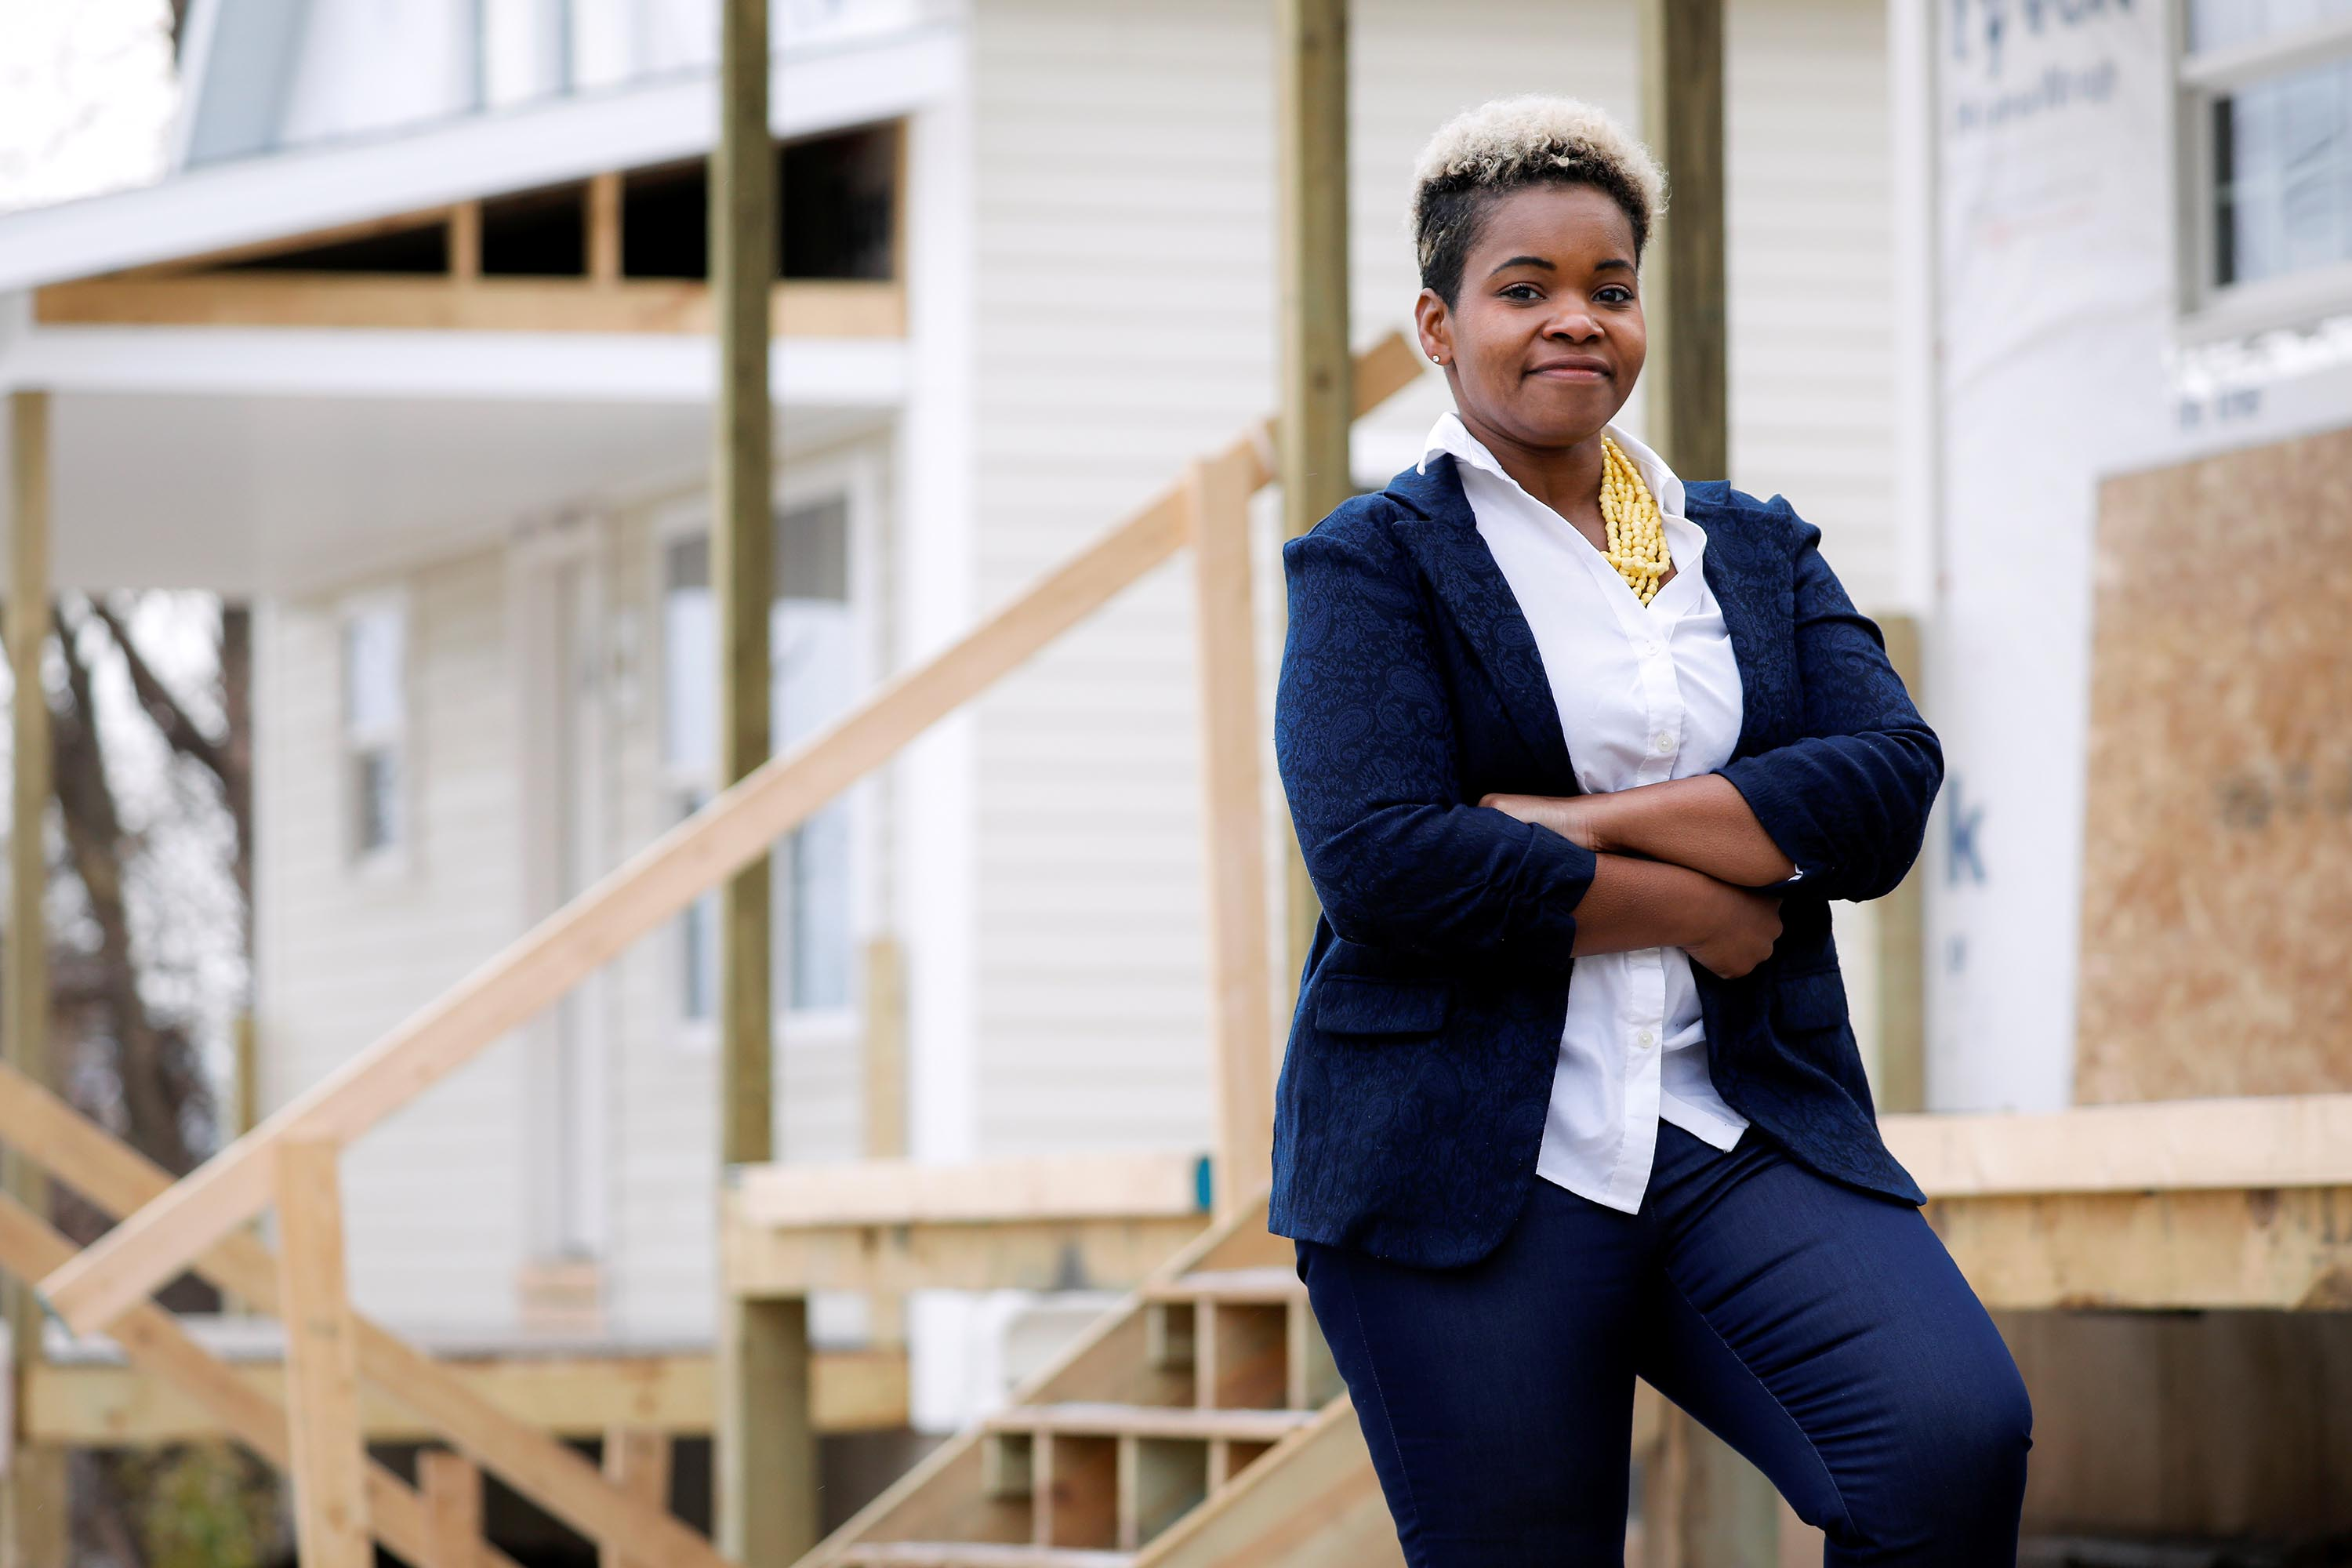 India Walton will defeat four-term incumbent in Buffalo mayoral primary, CNN projects